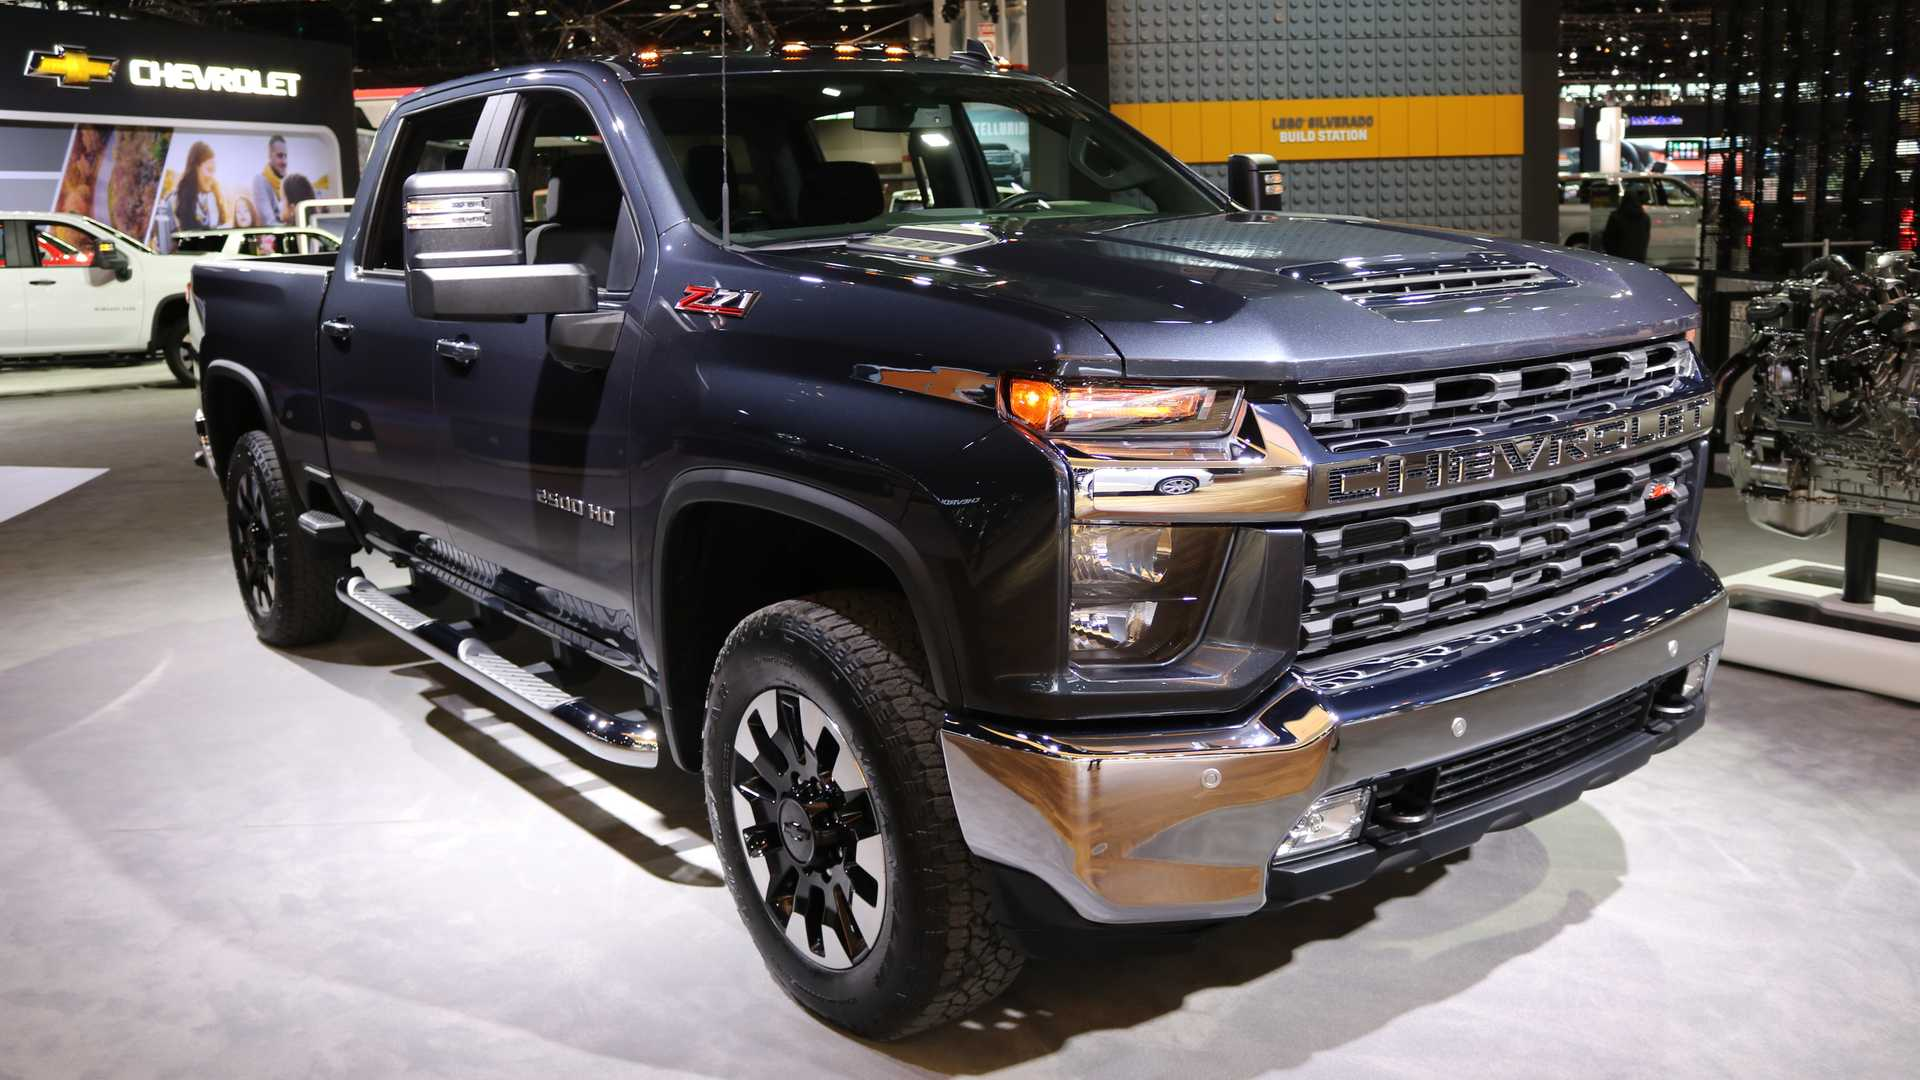 2020 Chevrolet Silverado HD Has New V8, Can Tow 35,500 Pounds